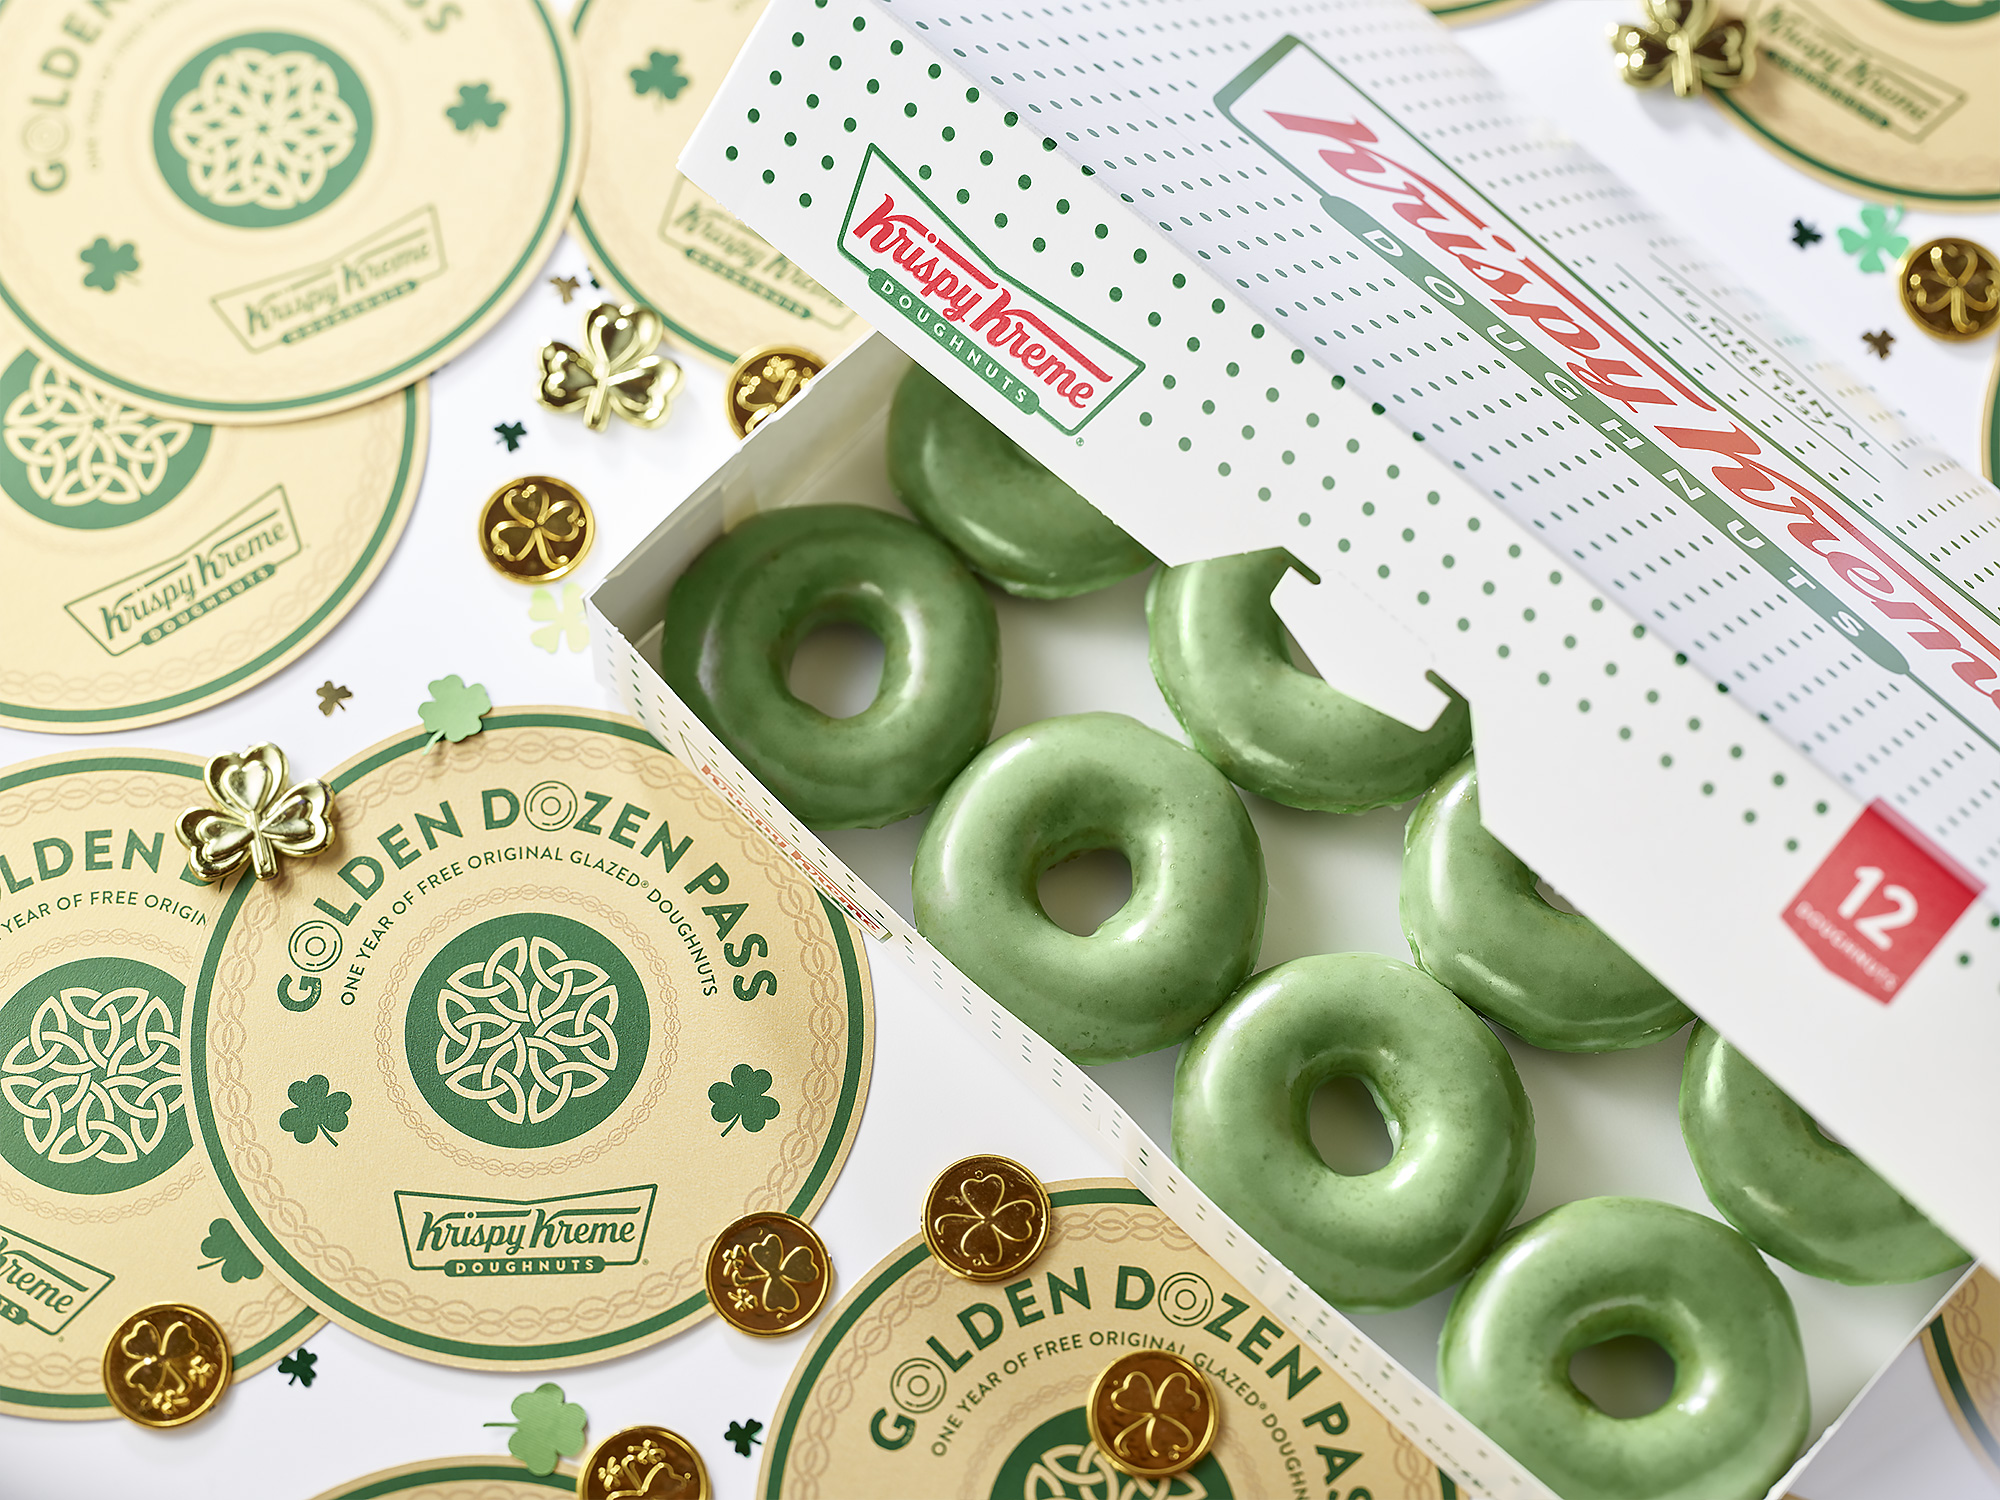 Krispy Kreme Is Bringing Green Doughnuts Back for St. Patrick's Day